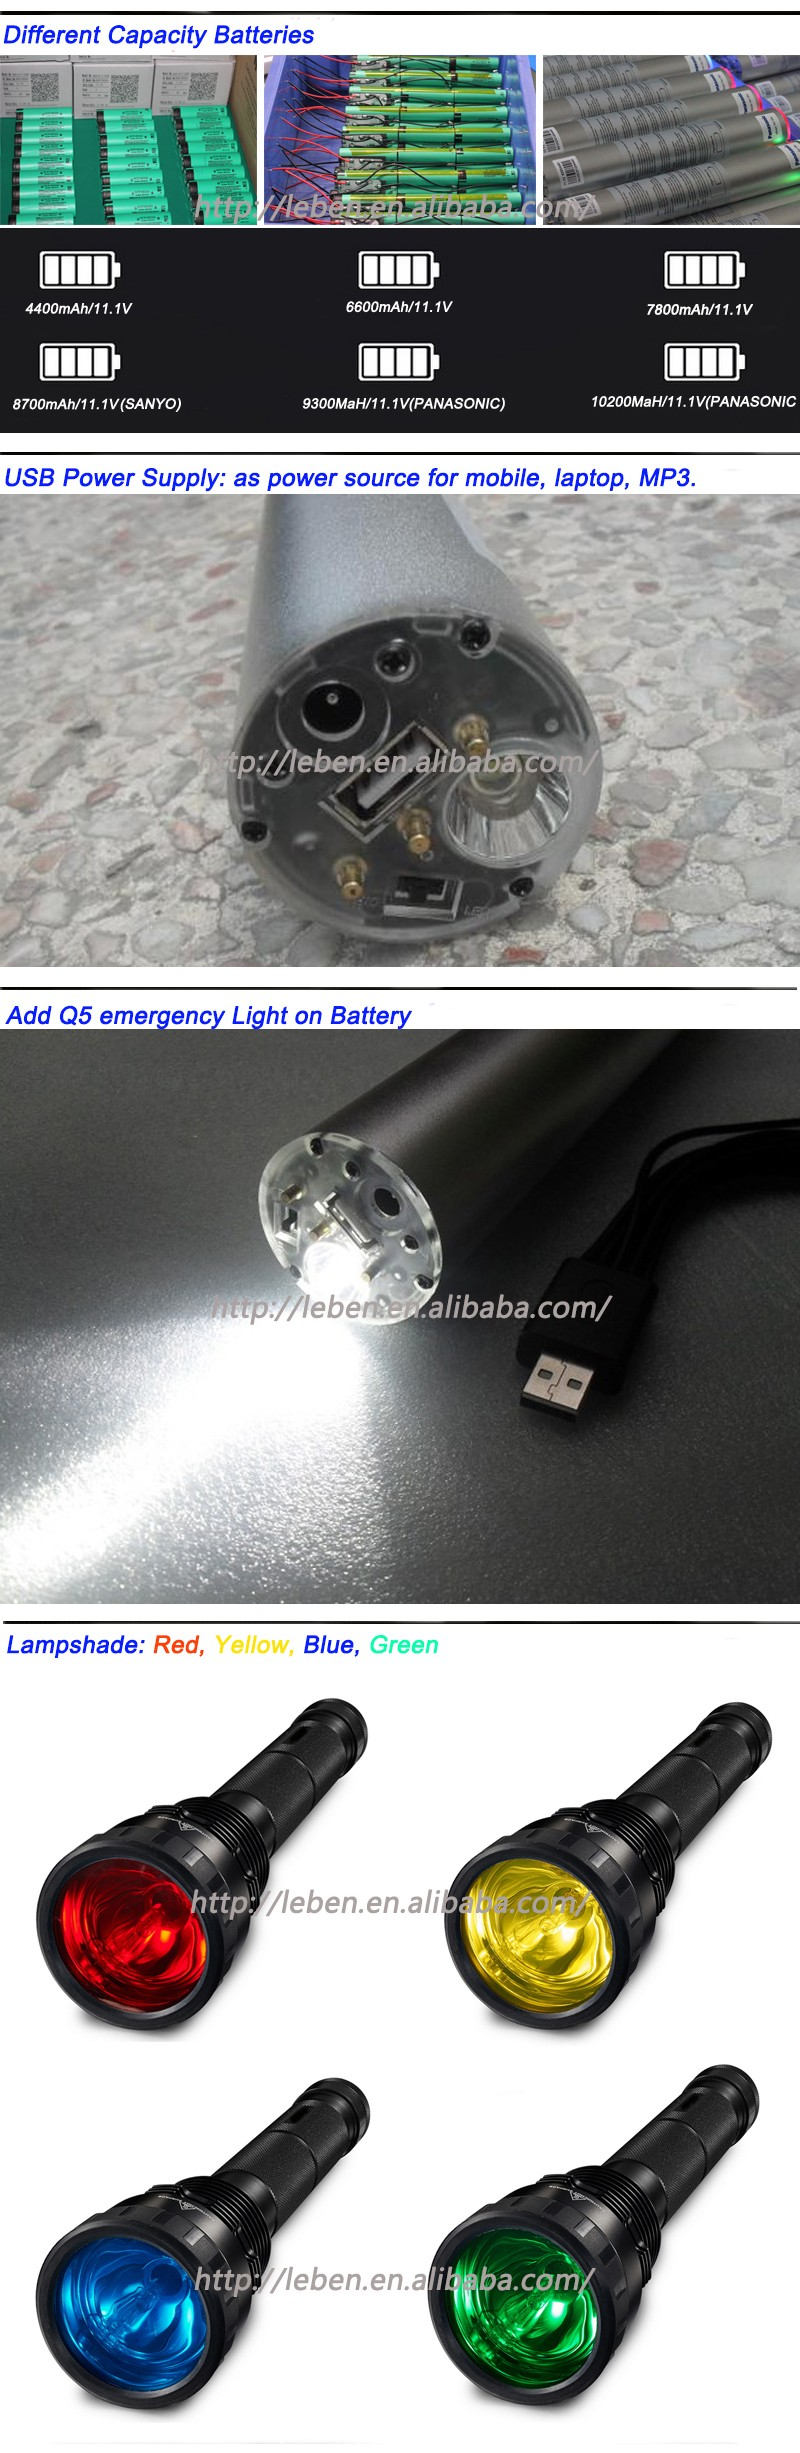 Factory Directly 85W HID xenon flashlight long-range searchlight bulb and ballast for hid flashlight